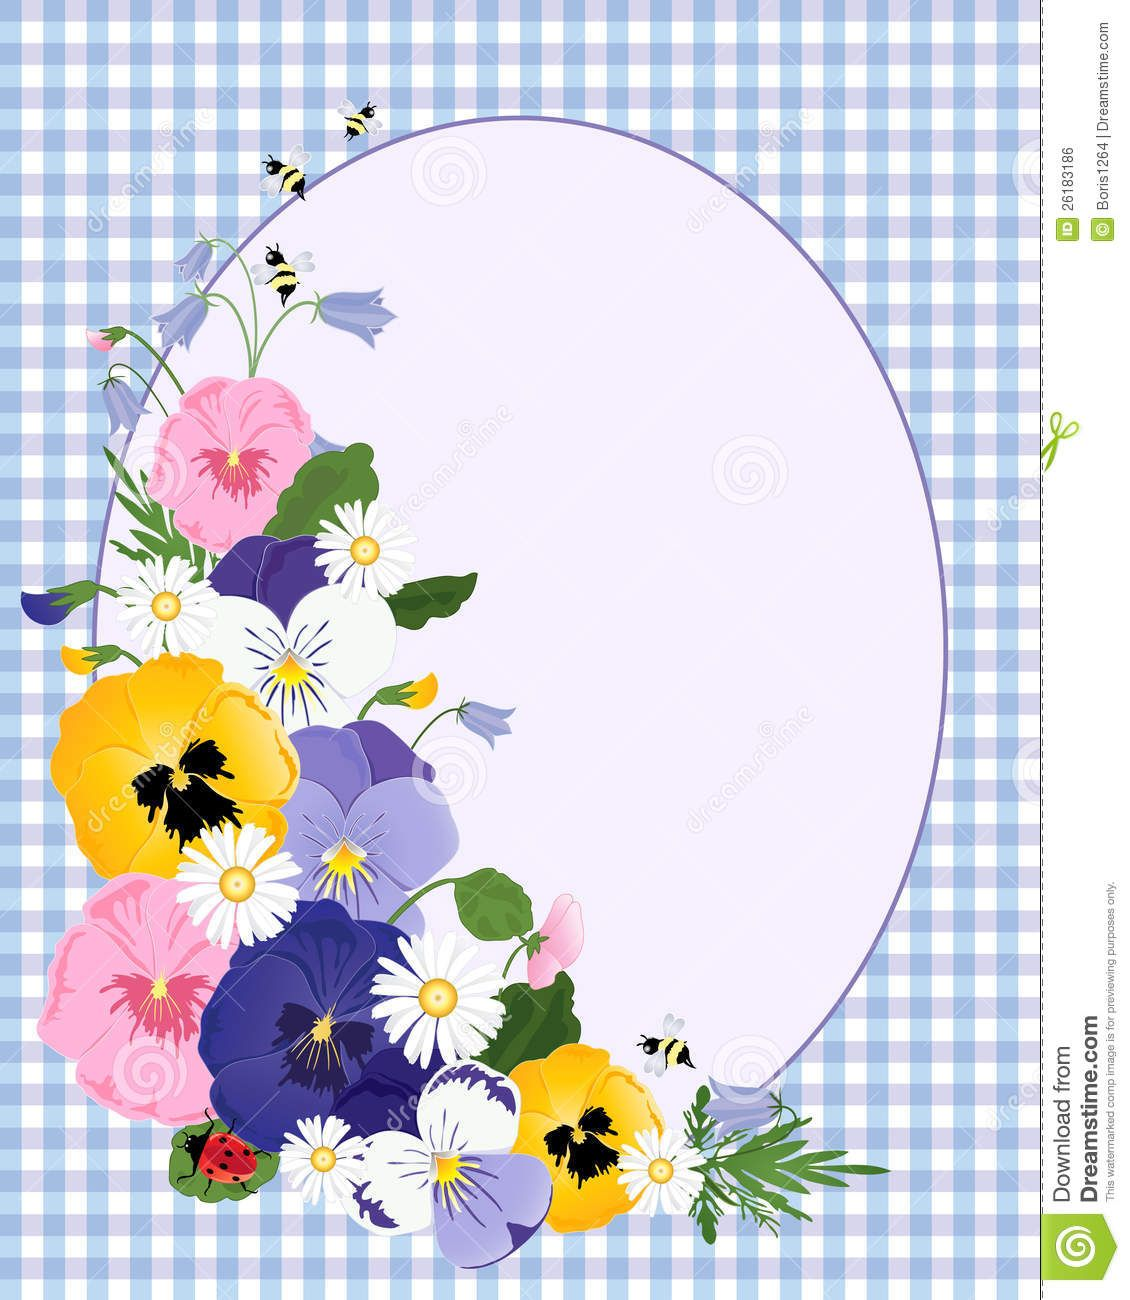 Pansy Flower Borders Google Search Pansies Flowers Flower Border Flowering Vines